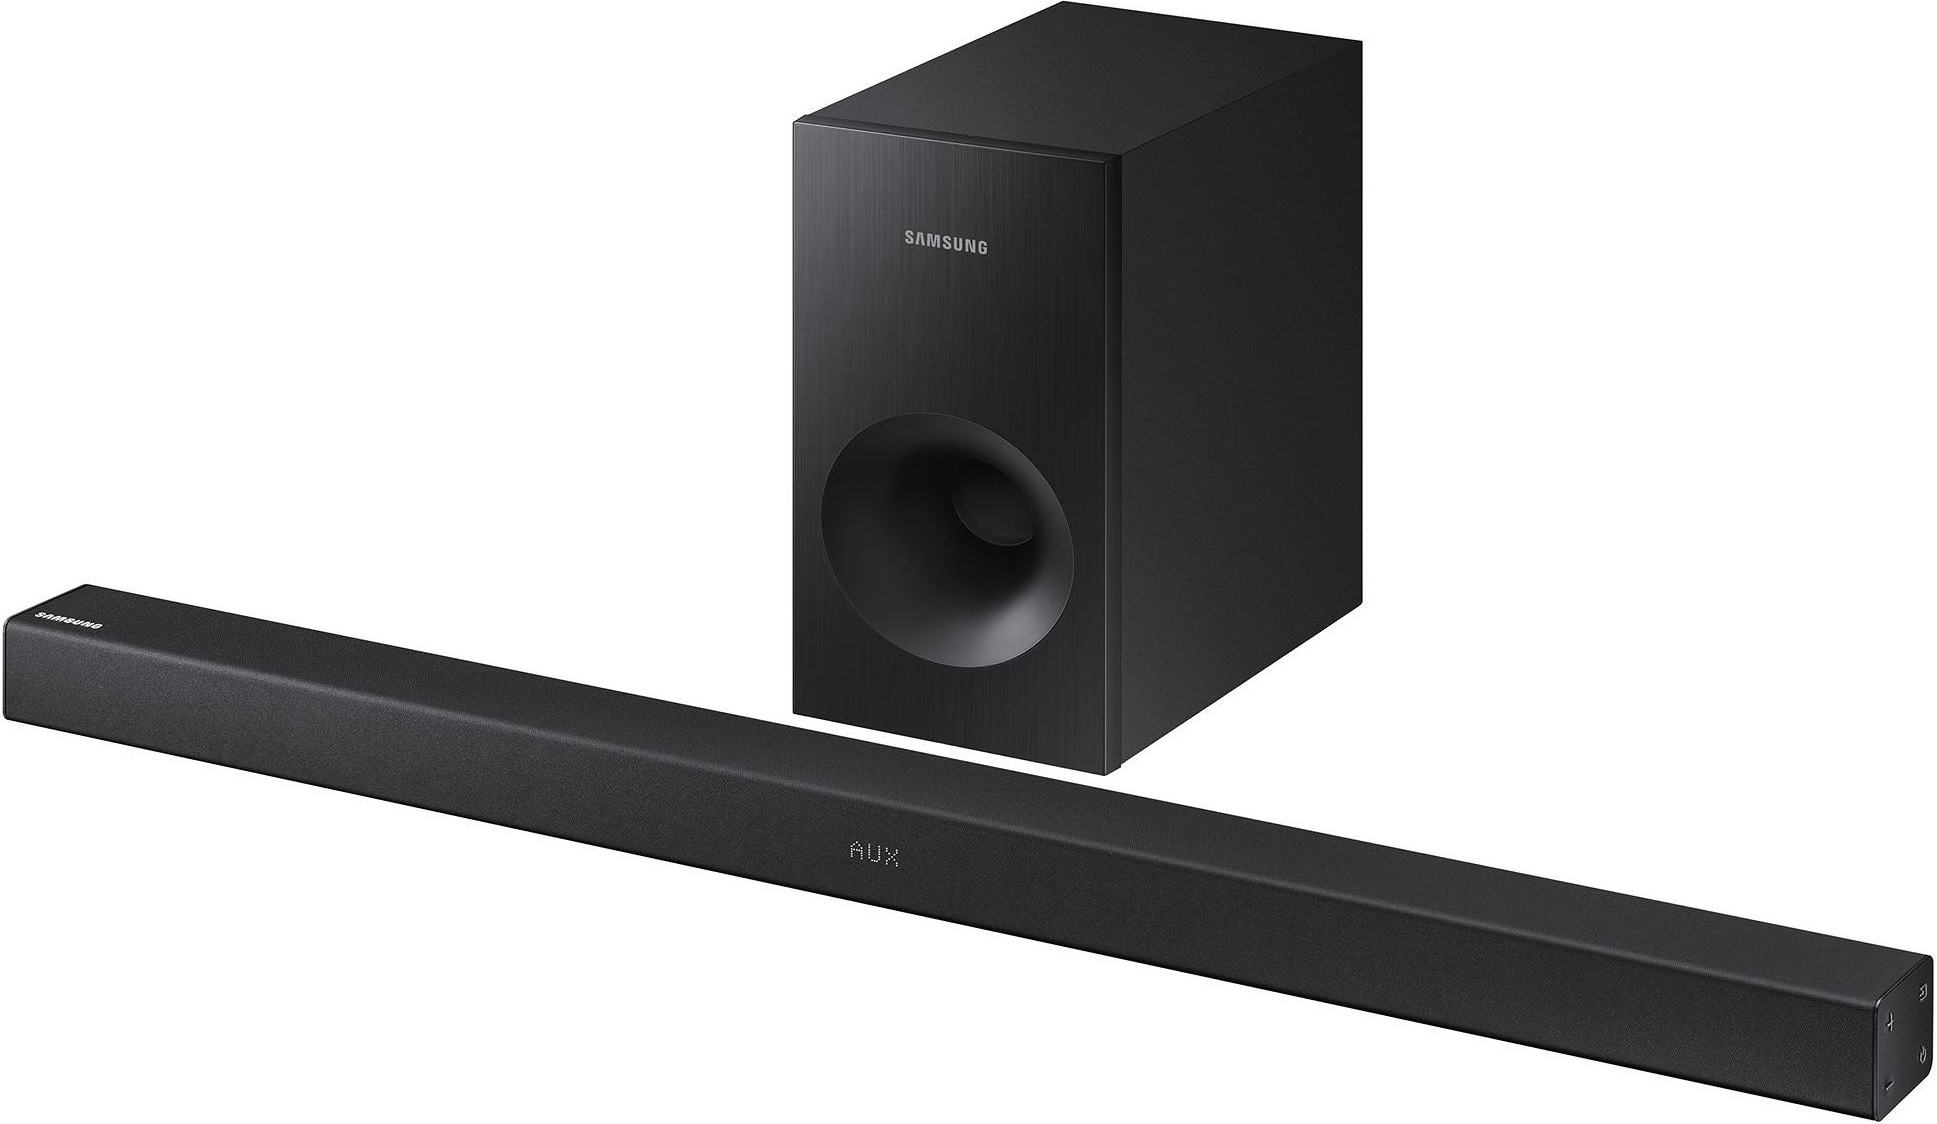 samsung 2 1 channel 130w soundbar samsung hw k360 2 1 channel wireless soundbar subwoofer 130w black b ebay